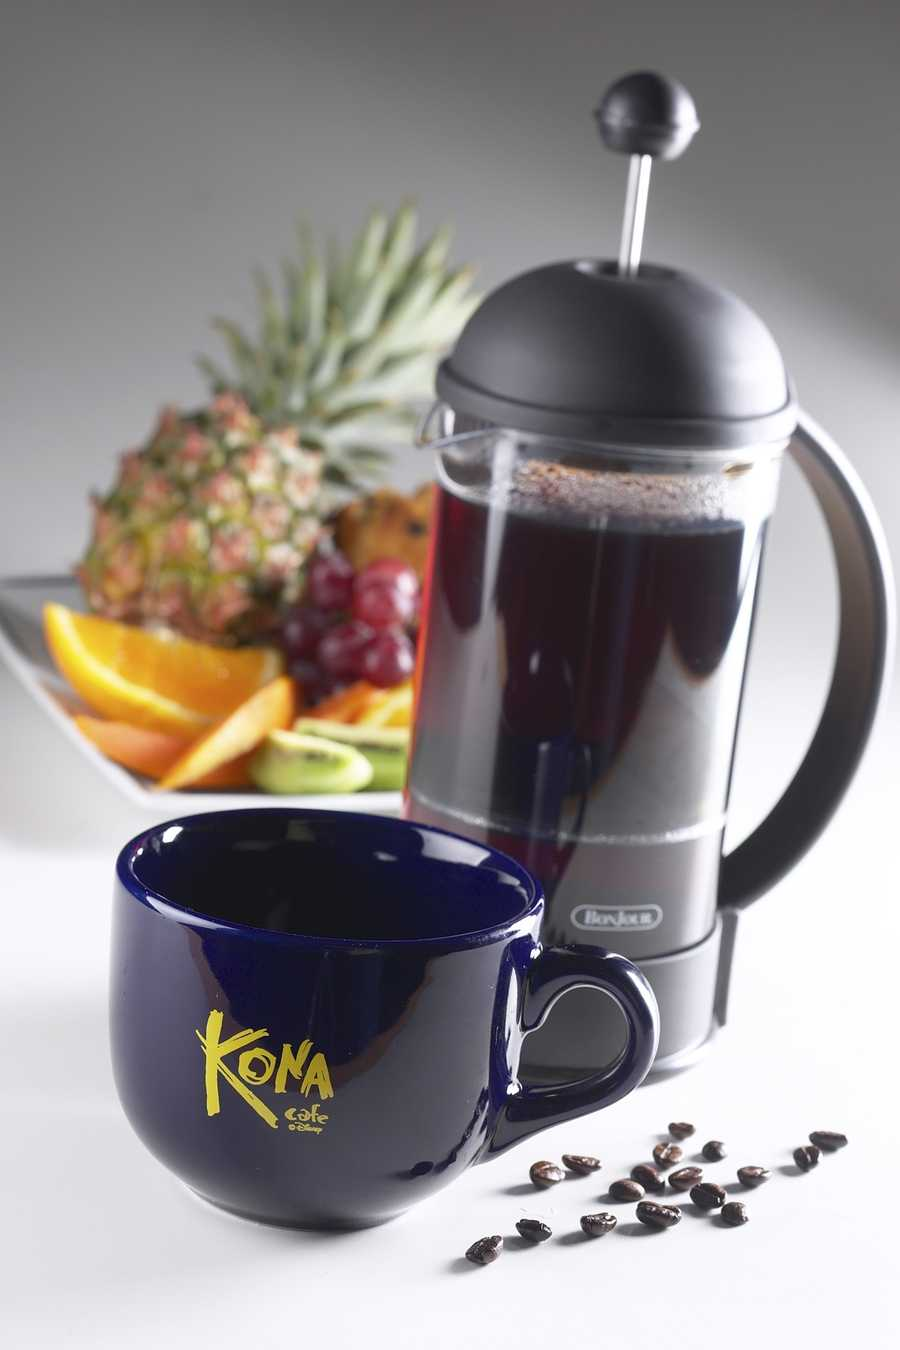 The Kona Cafe at Disney's Polynesian Resort serves authentic Kona coffee that is made from beans from Hawaii.  The area the beans are from is one of the most fertile regions in the state.  The beans get flown to Florida and then are roasted under Disney's strict specifications.